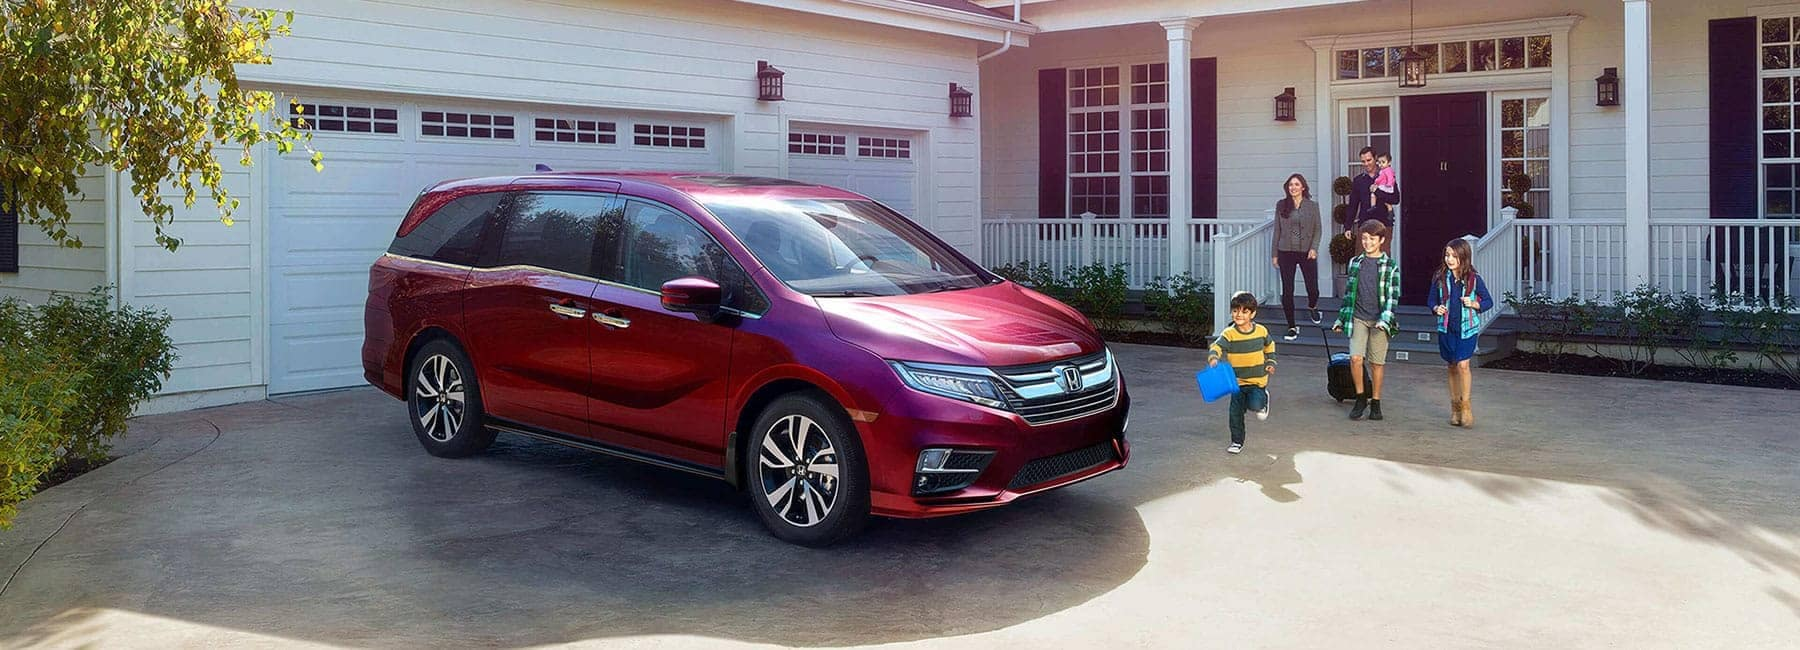 family getting ready to ride Honda Odyssey